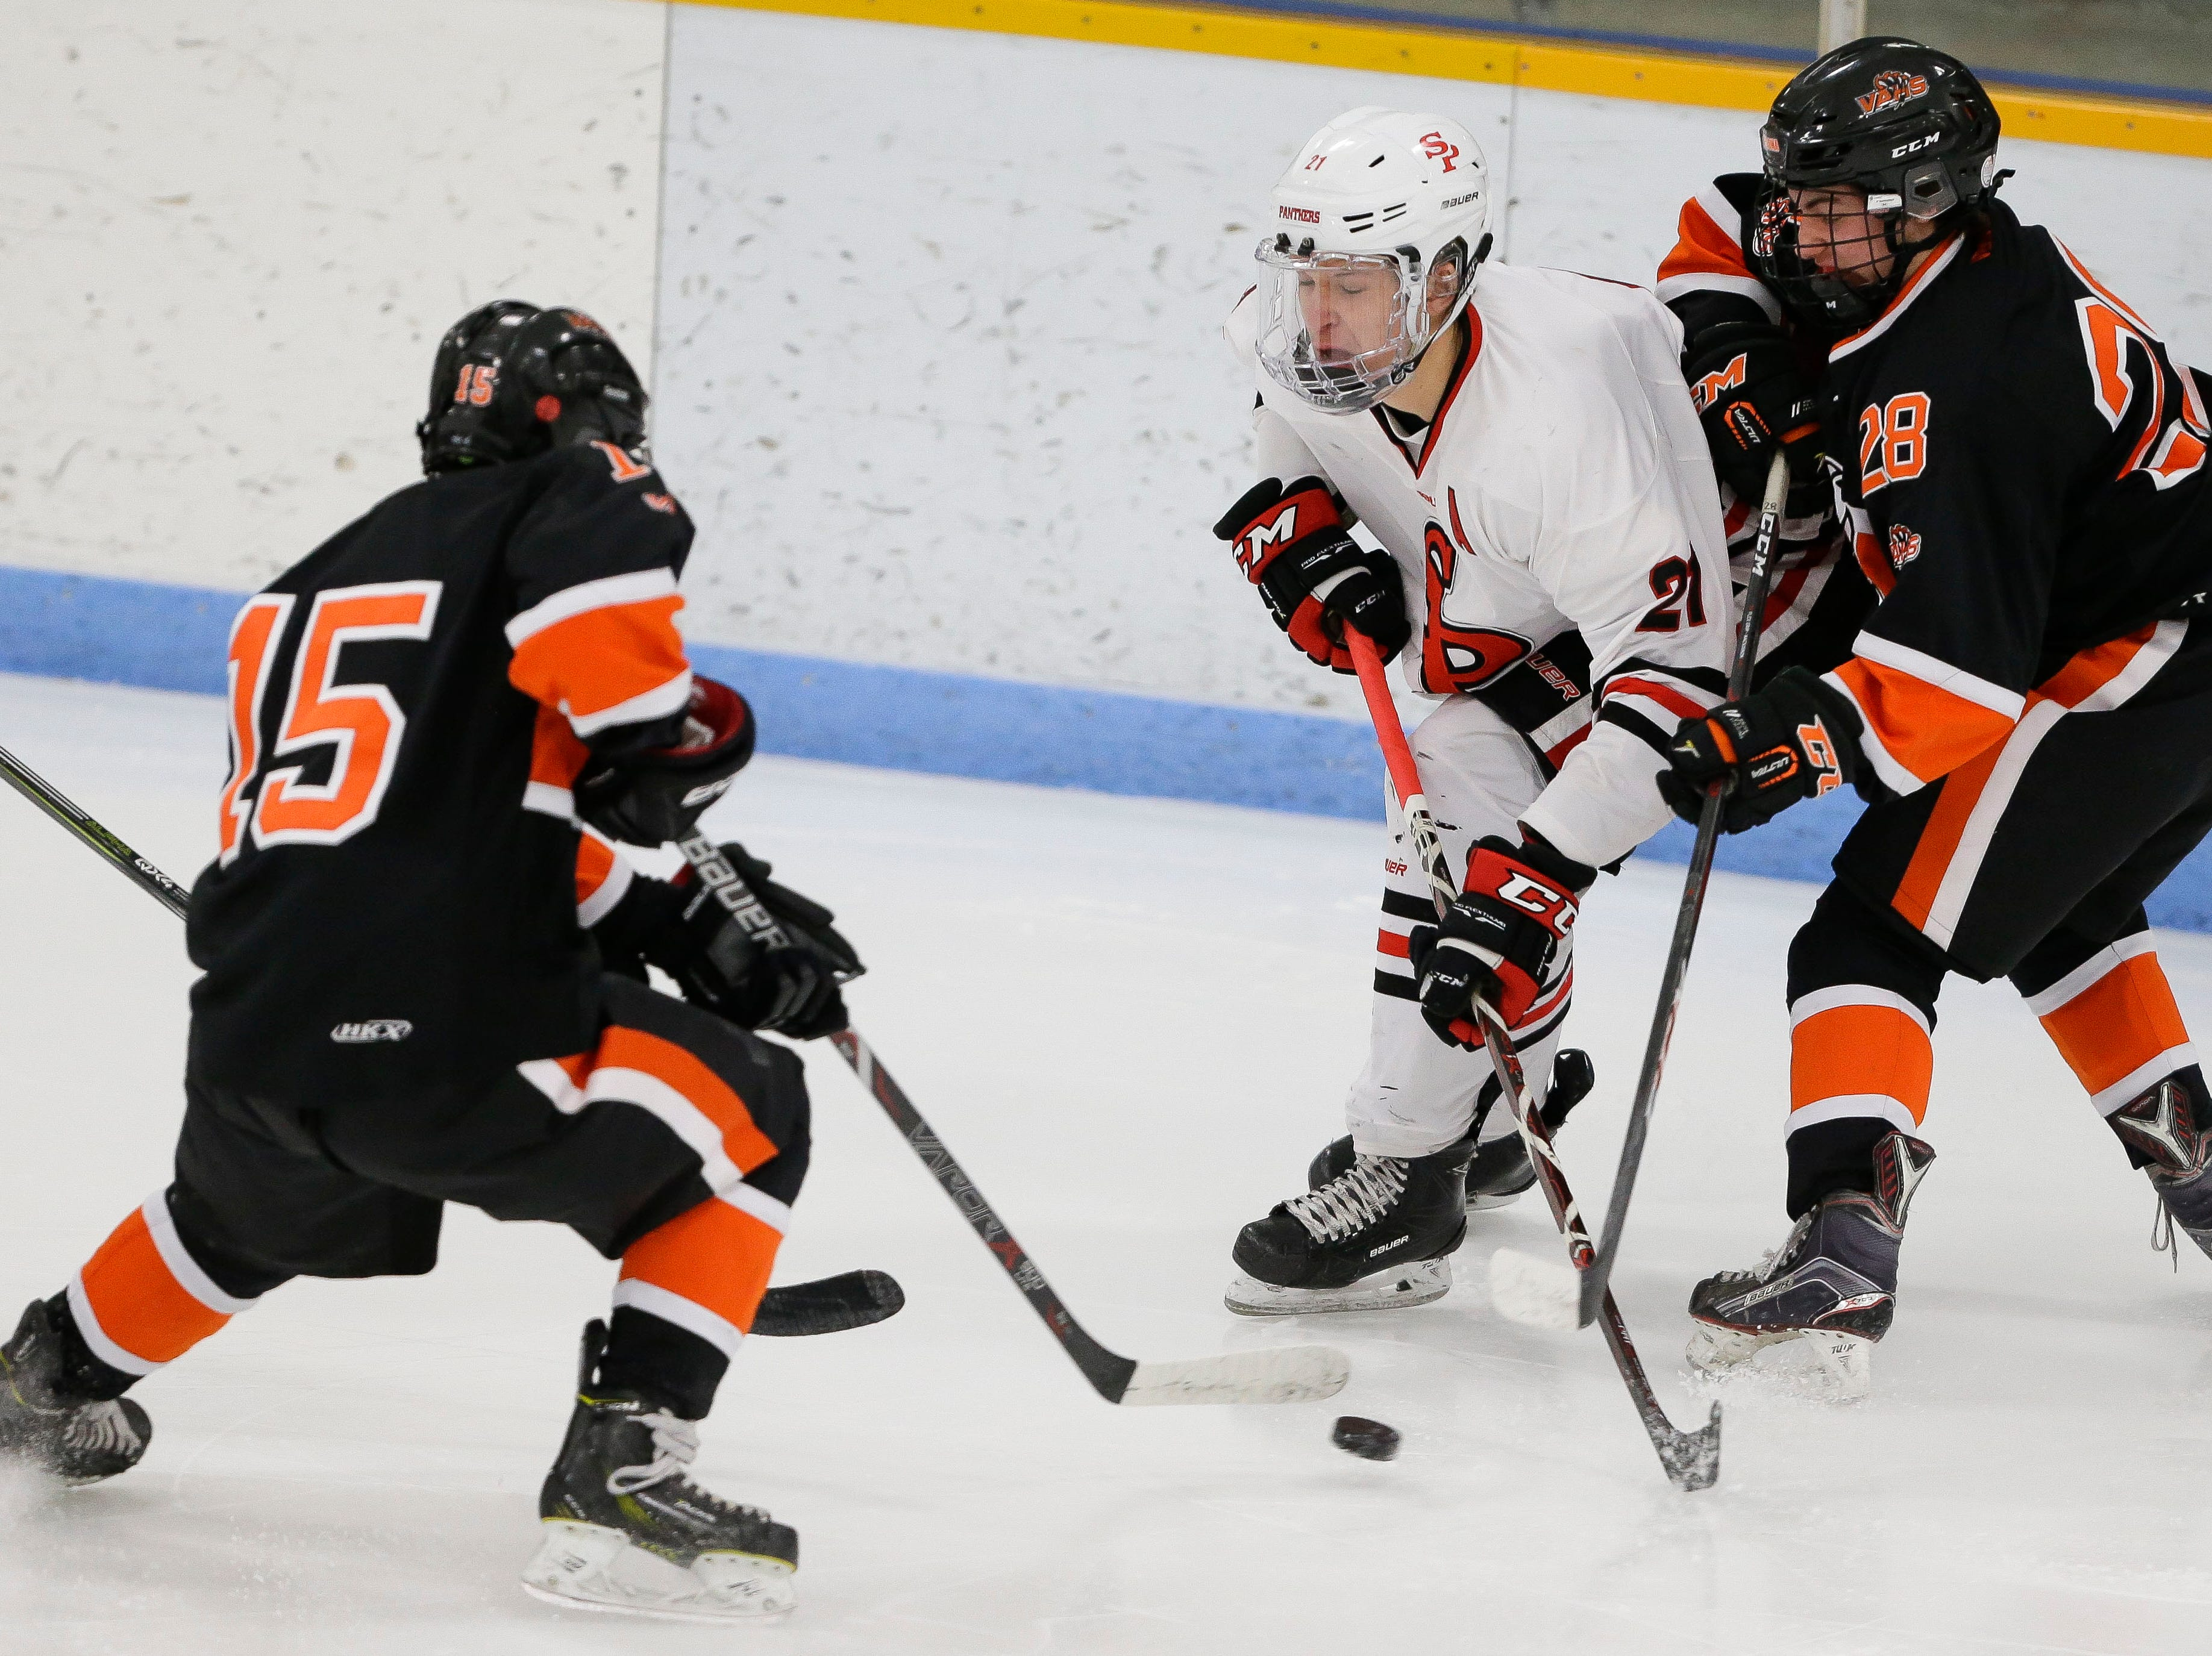 SPASH's Jake Minch (21) loses the puck to Verona's Michael Fischer (15) on Saturday, January 26, 2019, at K.B. Willett Ice Arena in Stevens Point, Wis. Tork Mason/USA TODAY NETWORK-Wisconsin